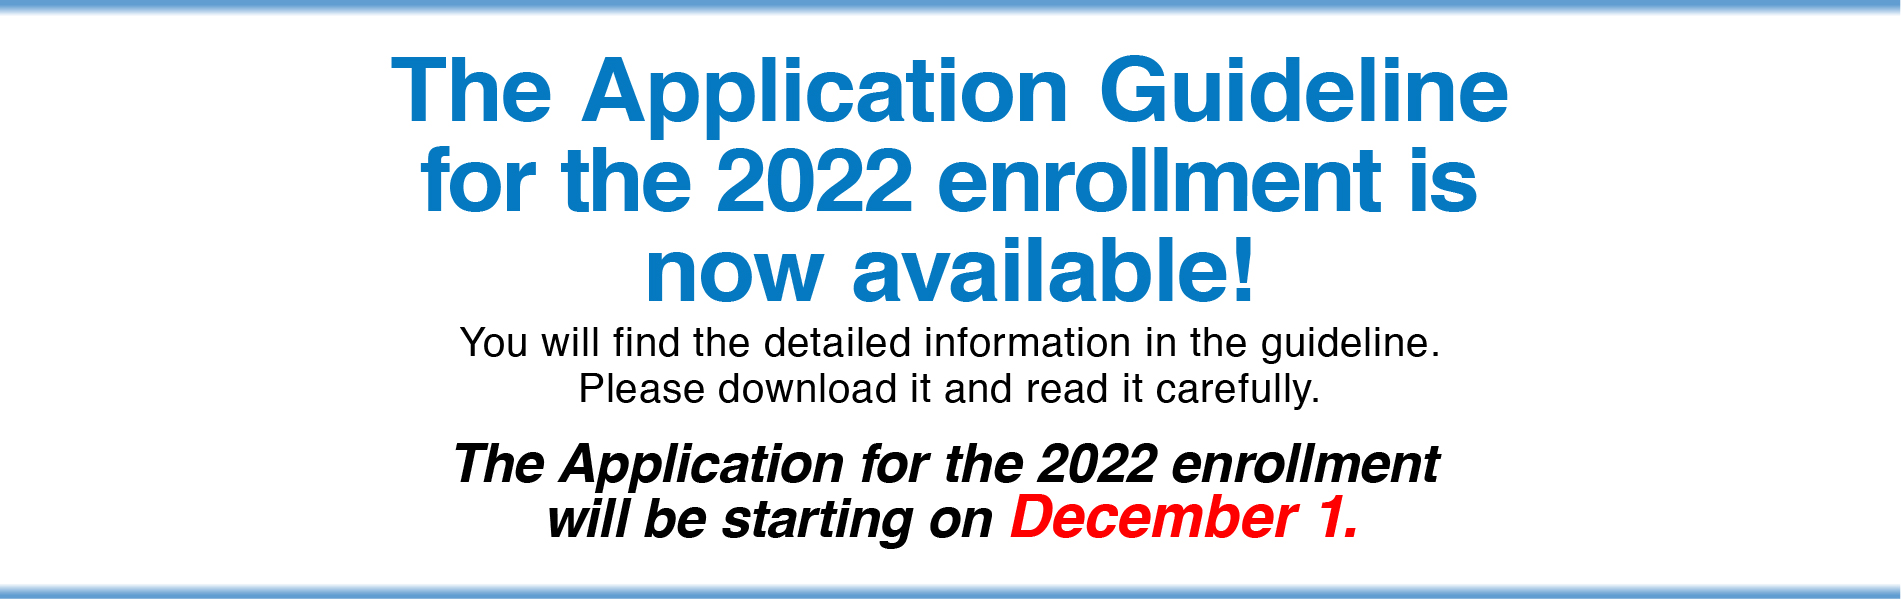 The Application Guideline for the 2022 enrollment is now available!